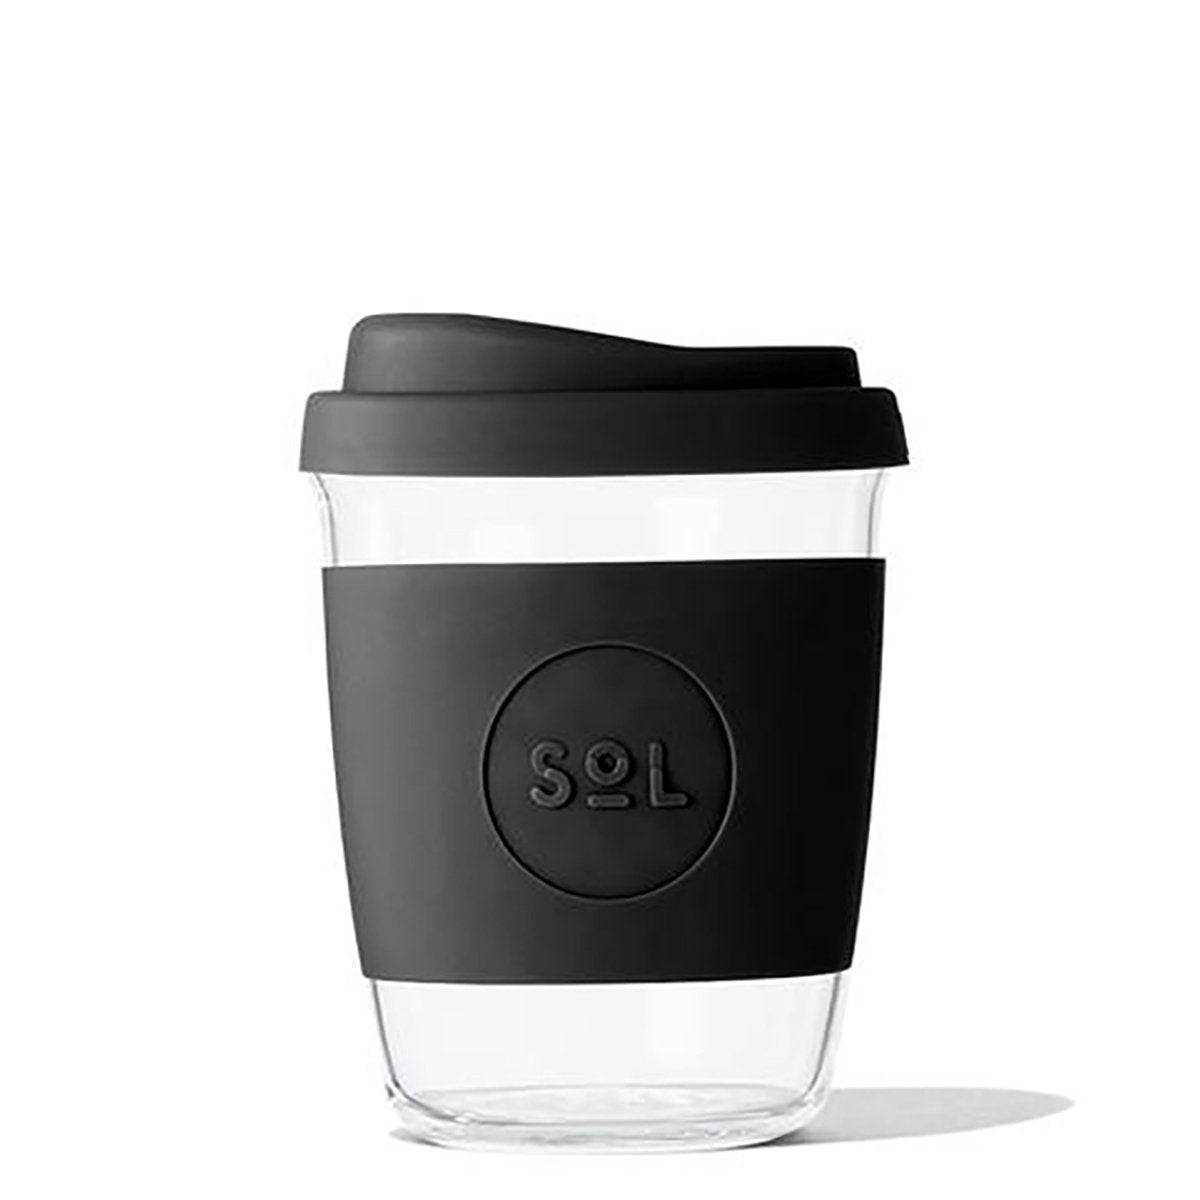 SoL Cups - Basalt Black - 8oz